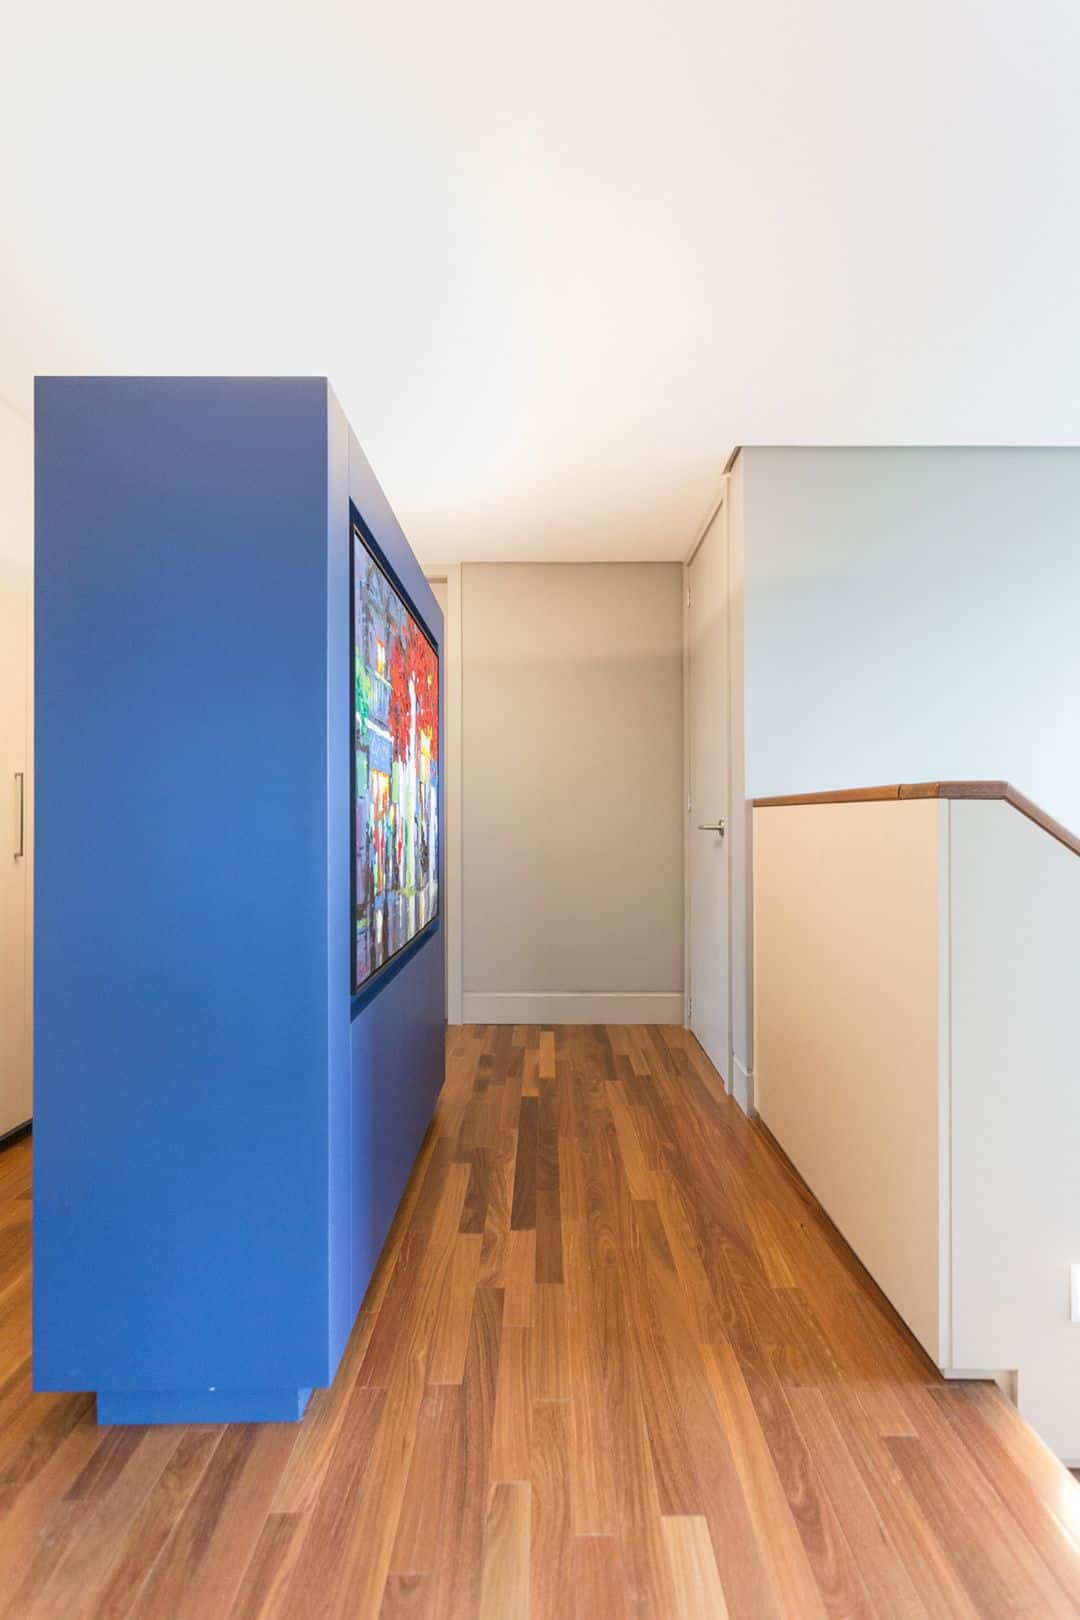 Casa R & L An Interior That Reflects Welcoming Personalities And Minimalist Aesthetics 7